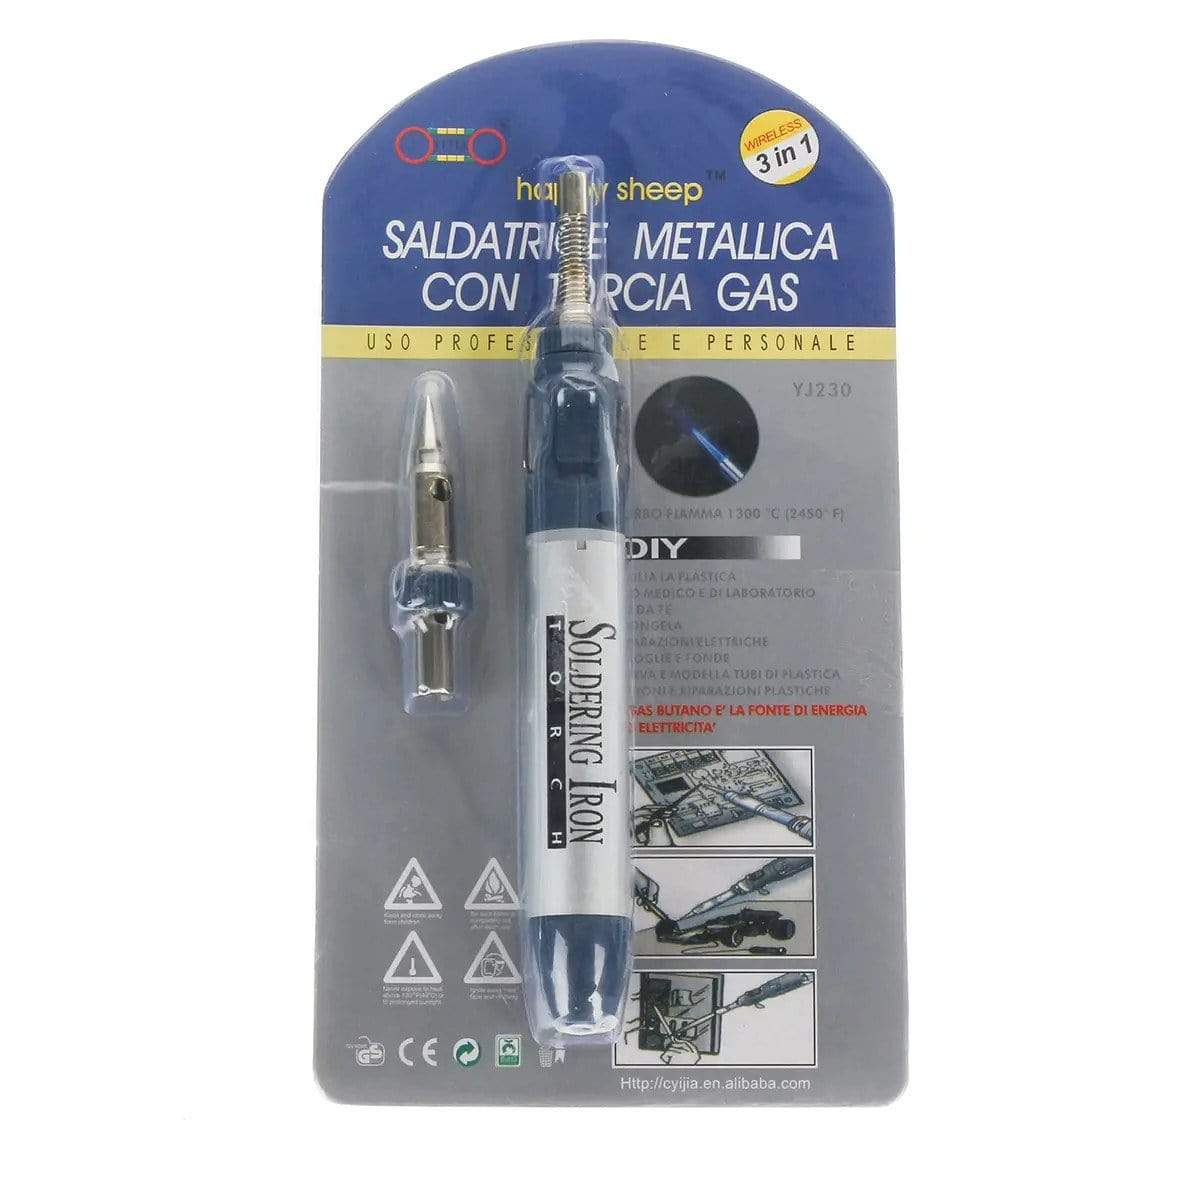 Gas Soldering Iron Snatcher Online Shopping South Africa